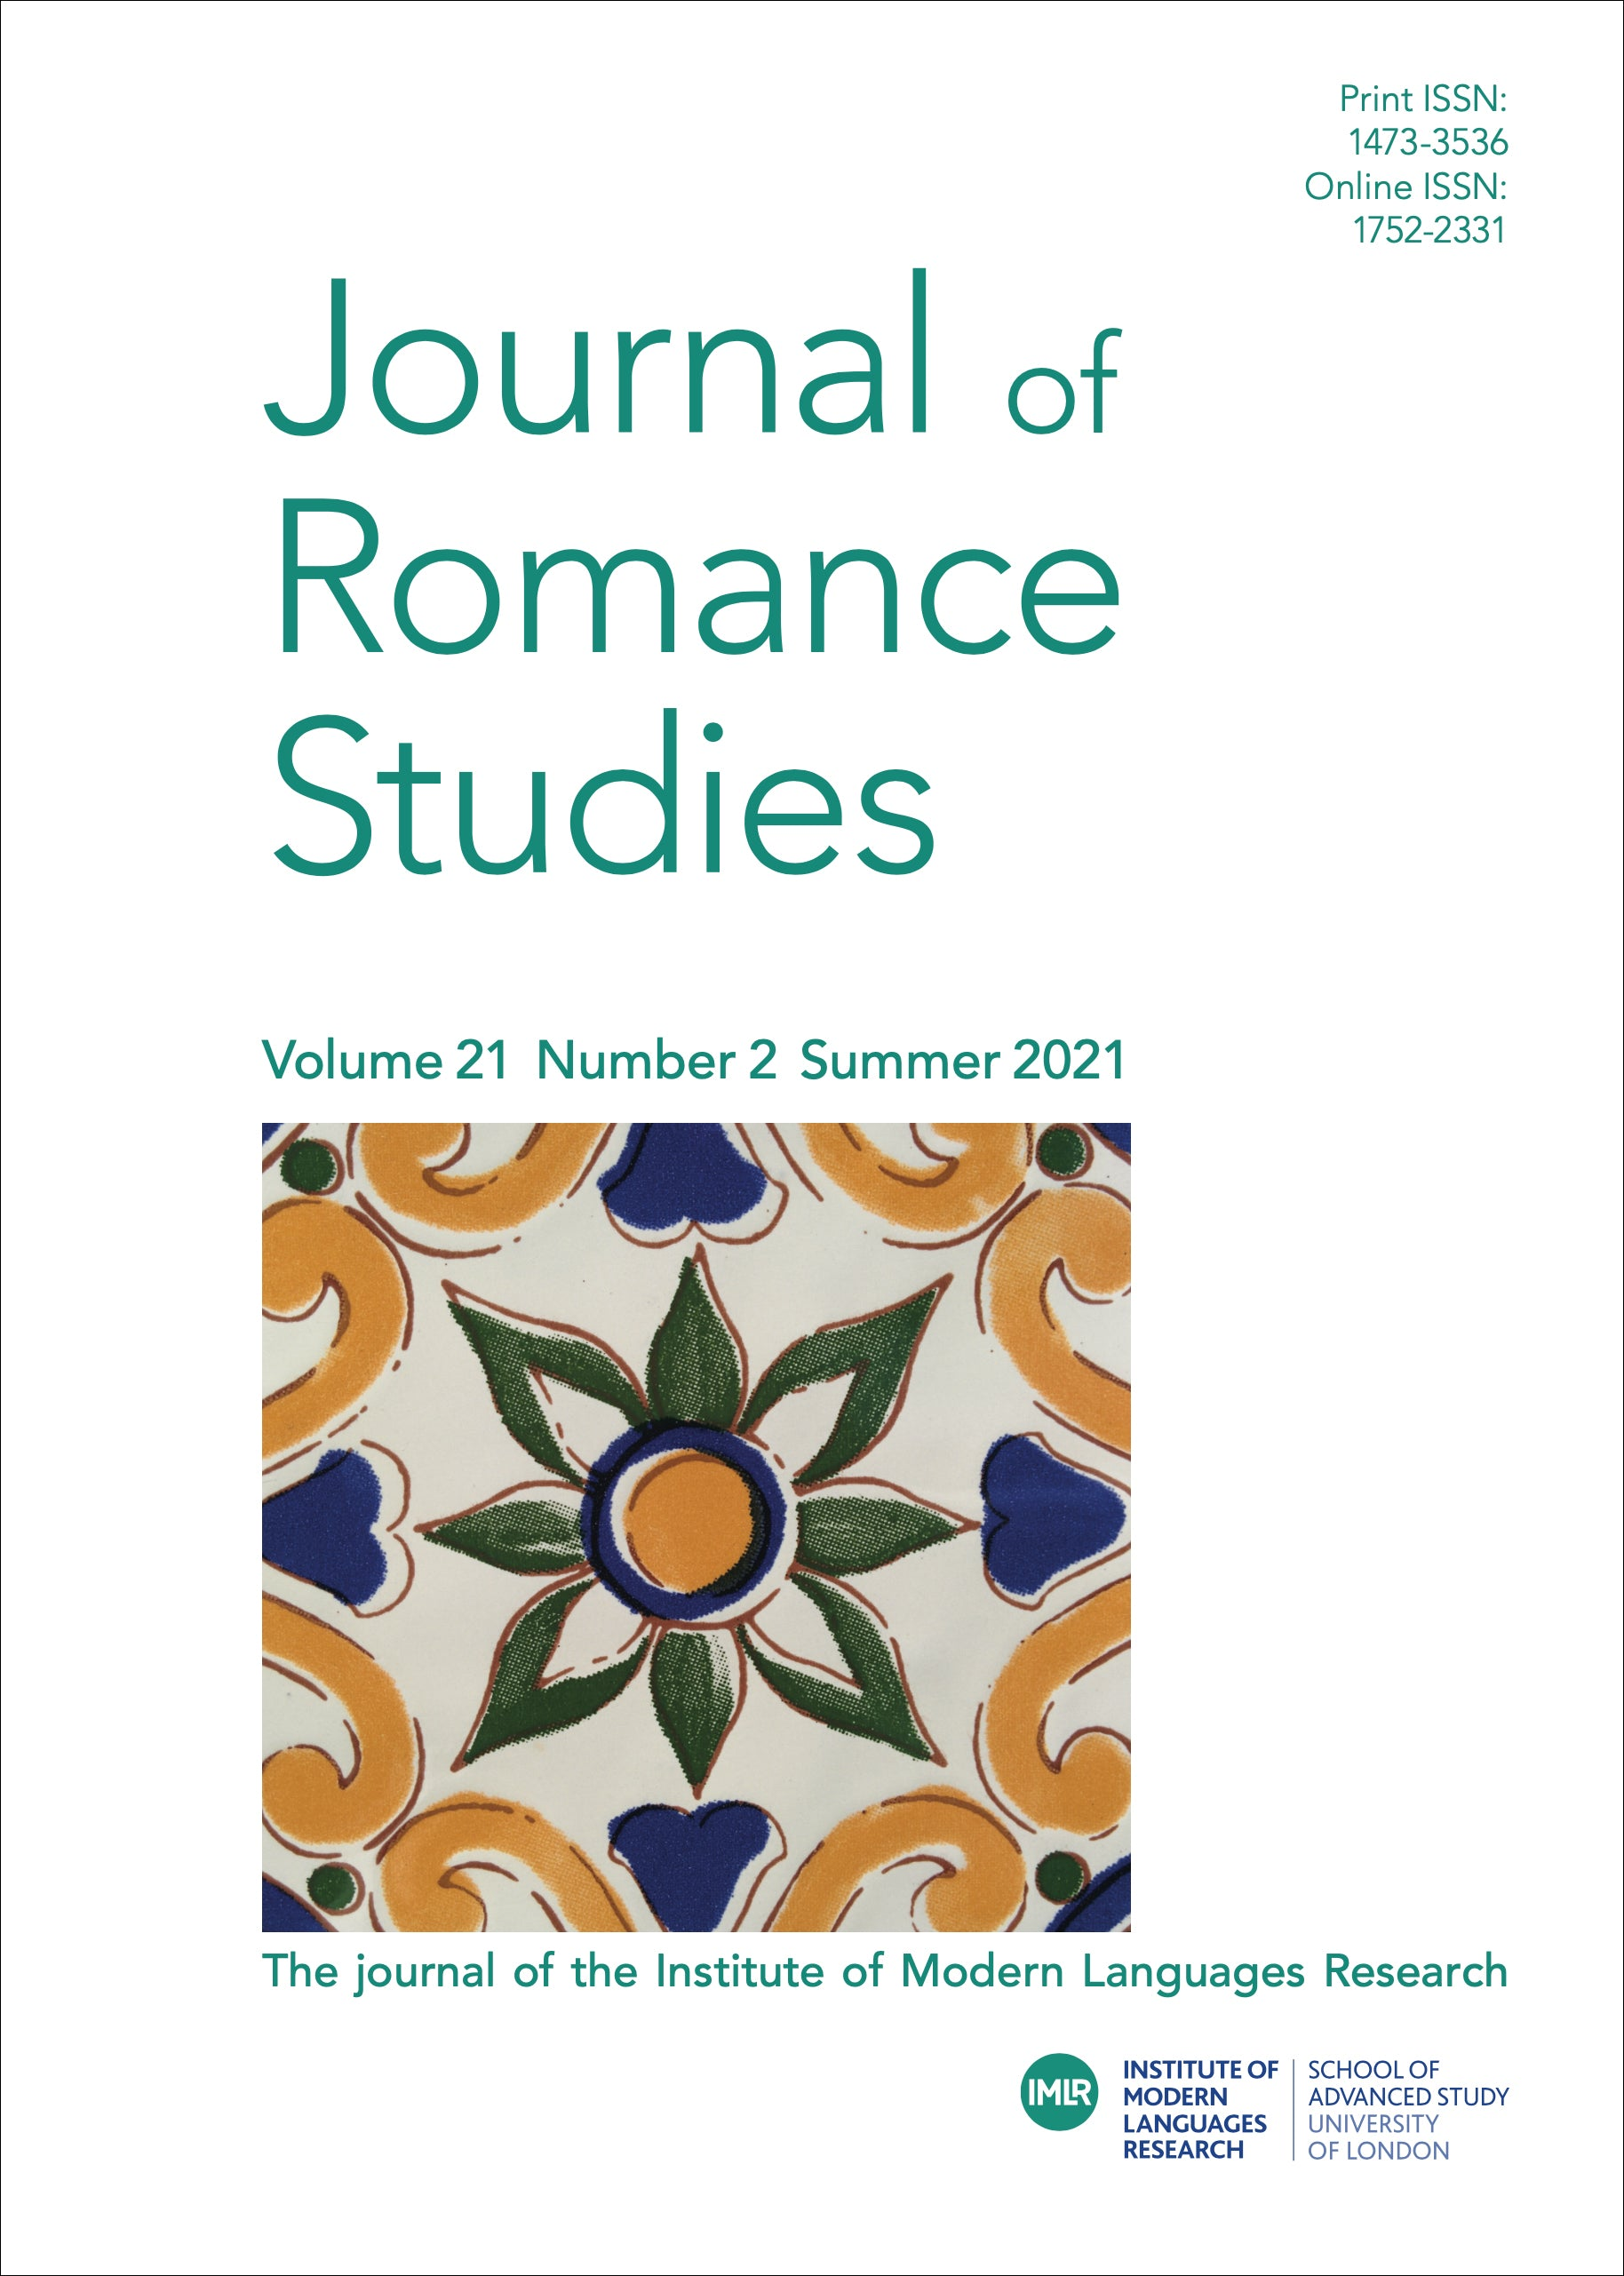 link to Journal of Romance Studies article